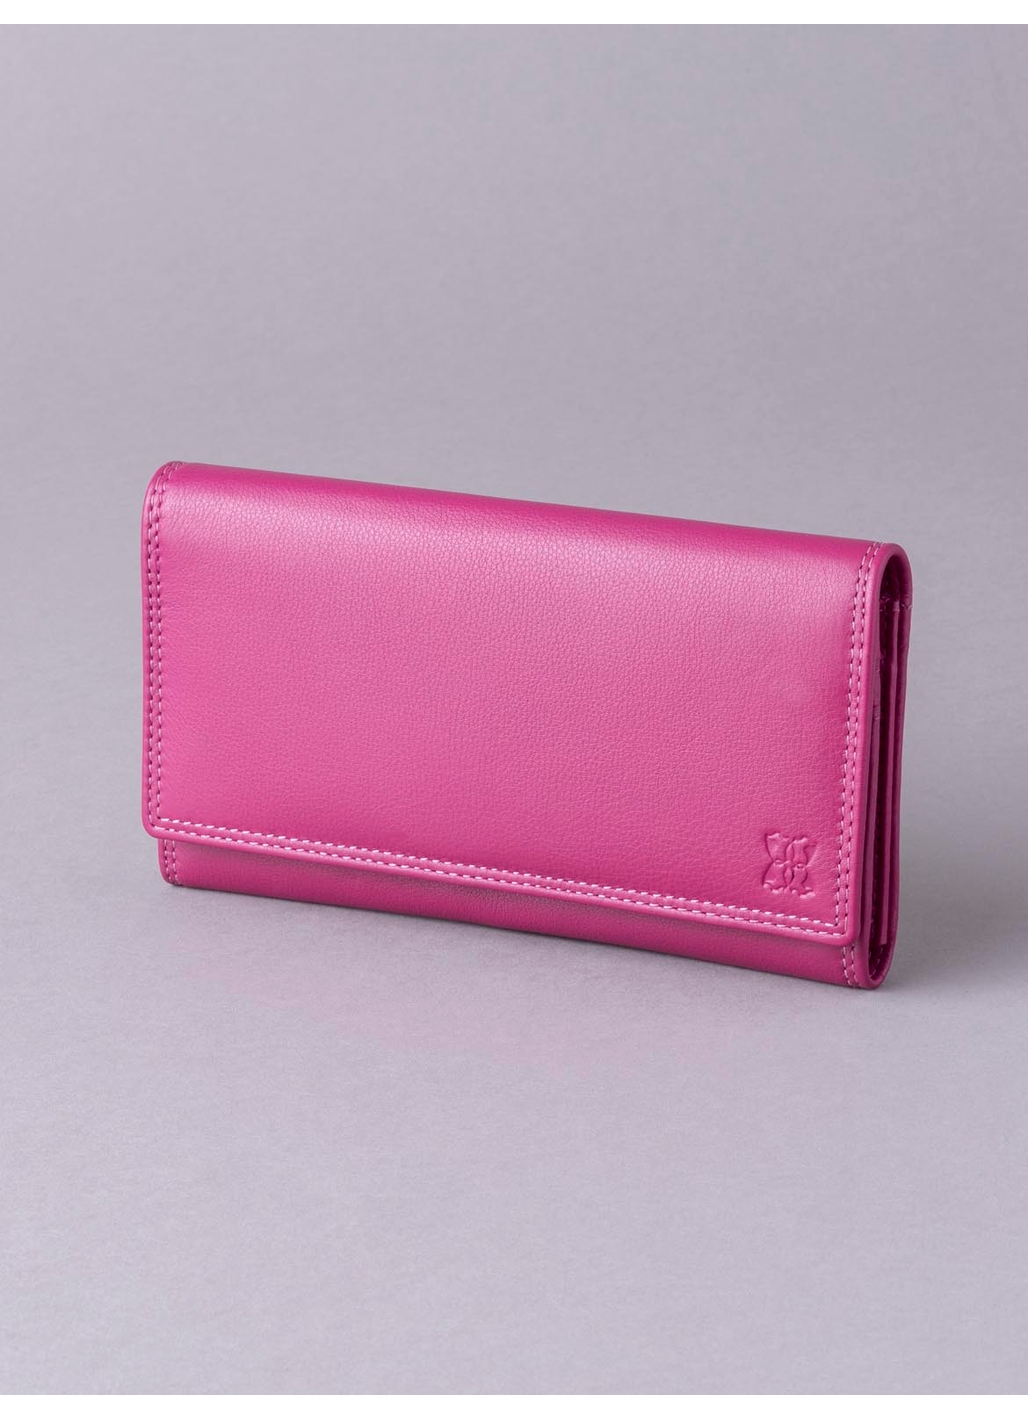 19cm Leather Purse in Cranberry Pink